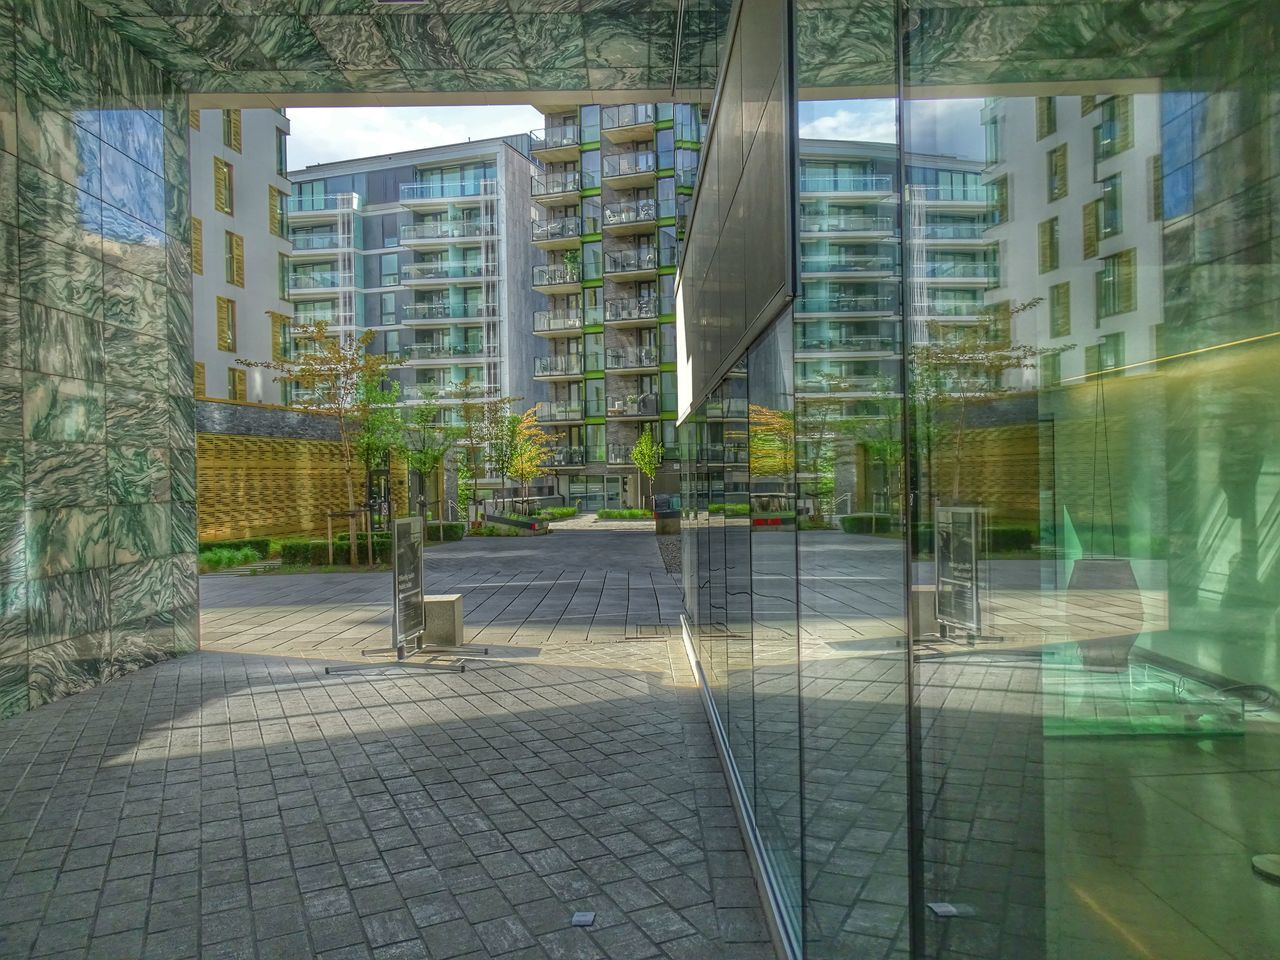 architecture, built structure, building exterior, no people, day, reflection, city, modern, window, outdoors, tree, growth, skyscraper